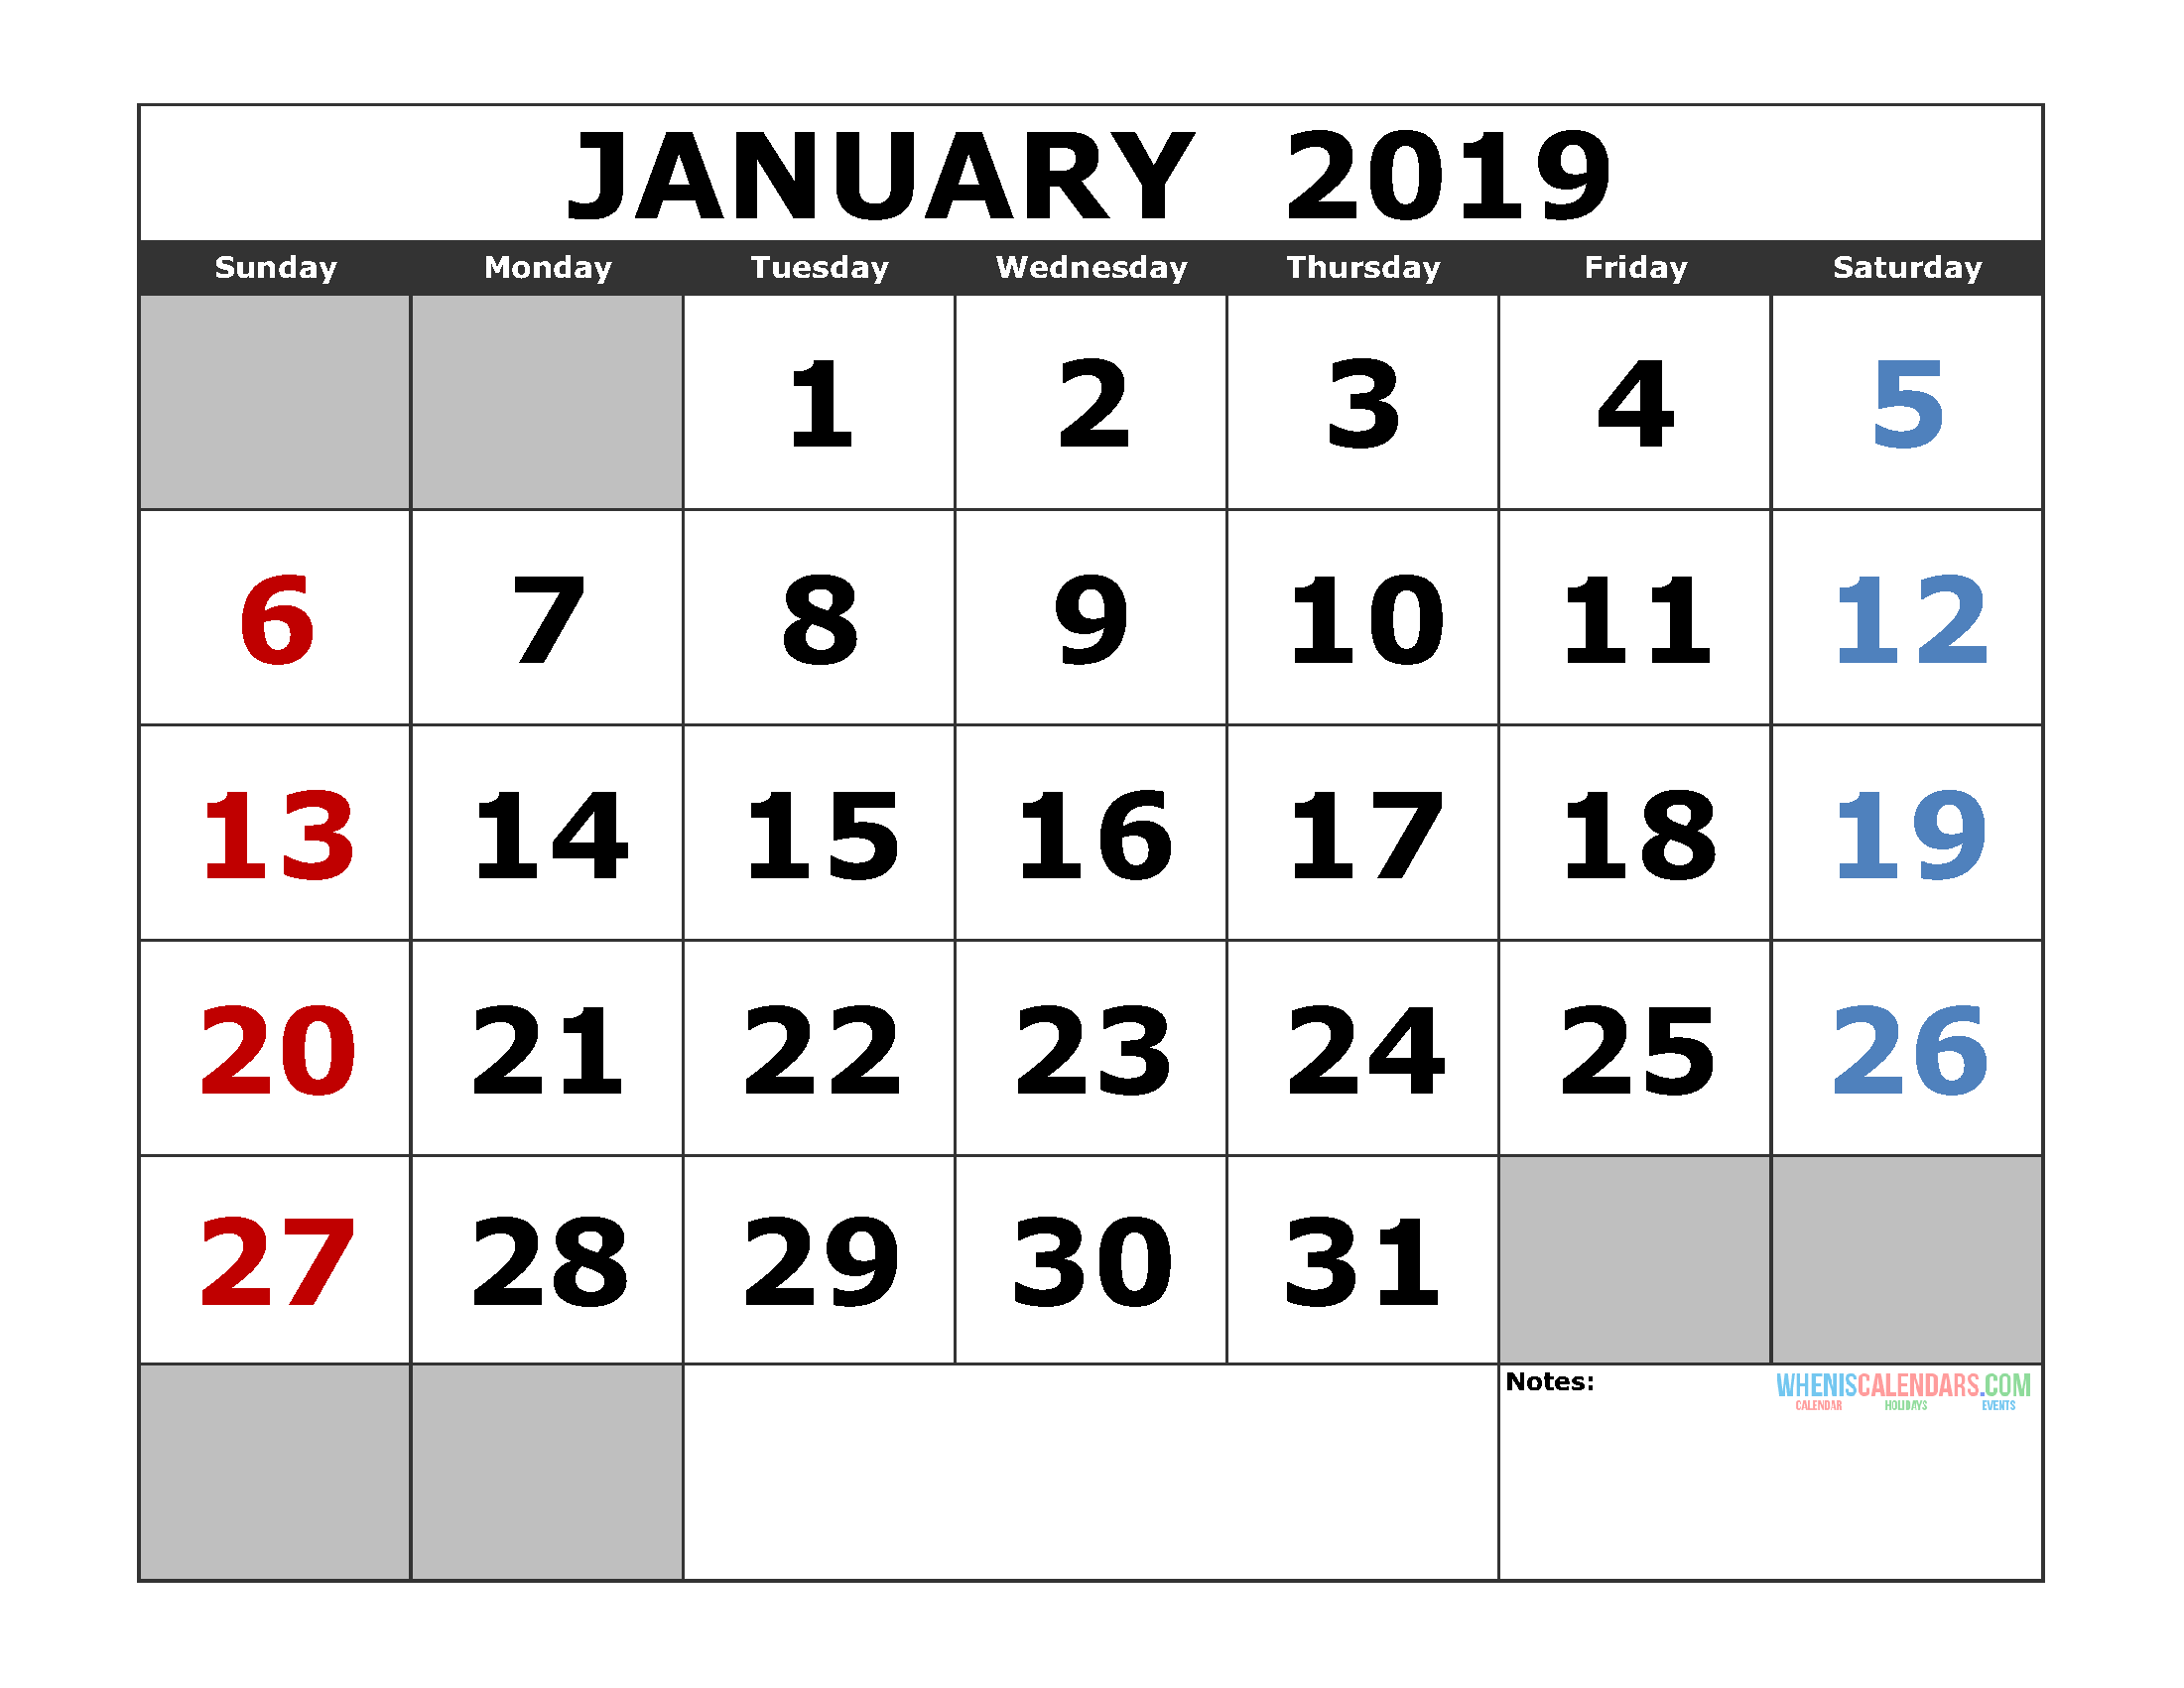 Free January 2019 Printable Calendar Template US. Edition (the first of the week as Sunday)